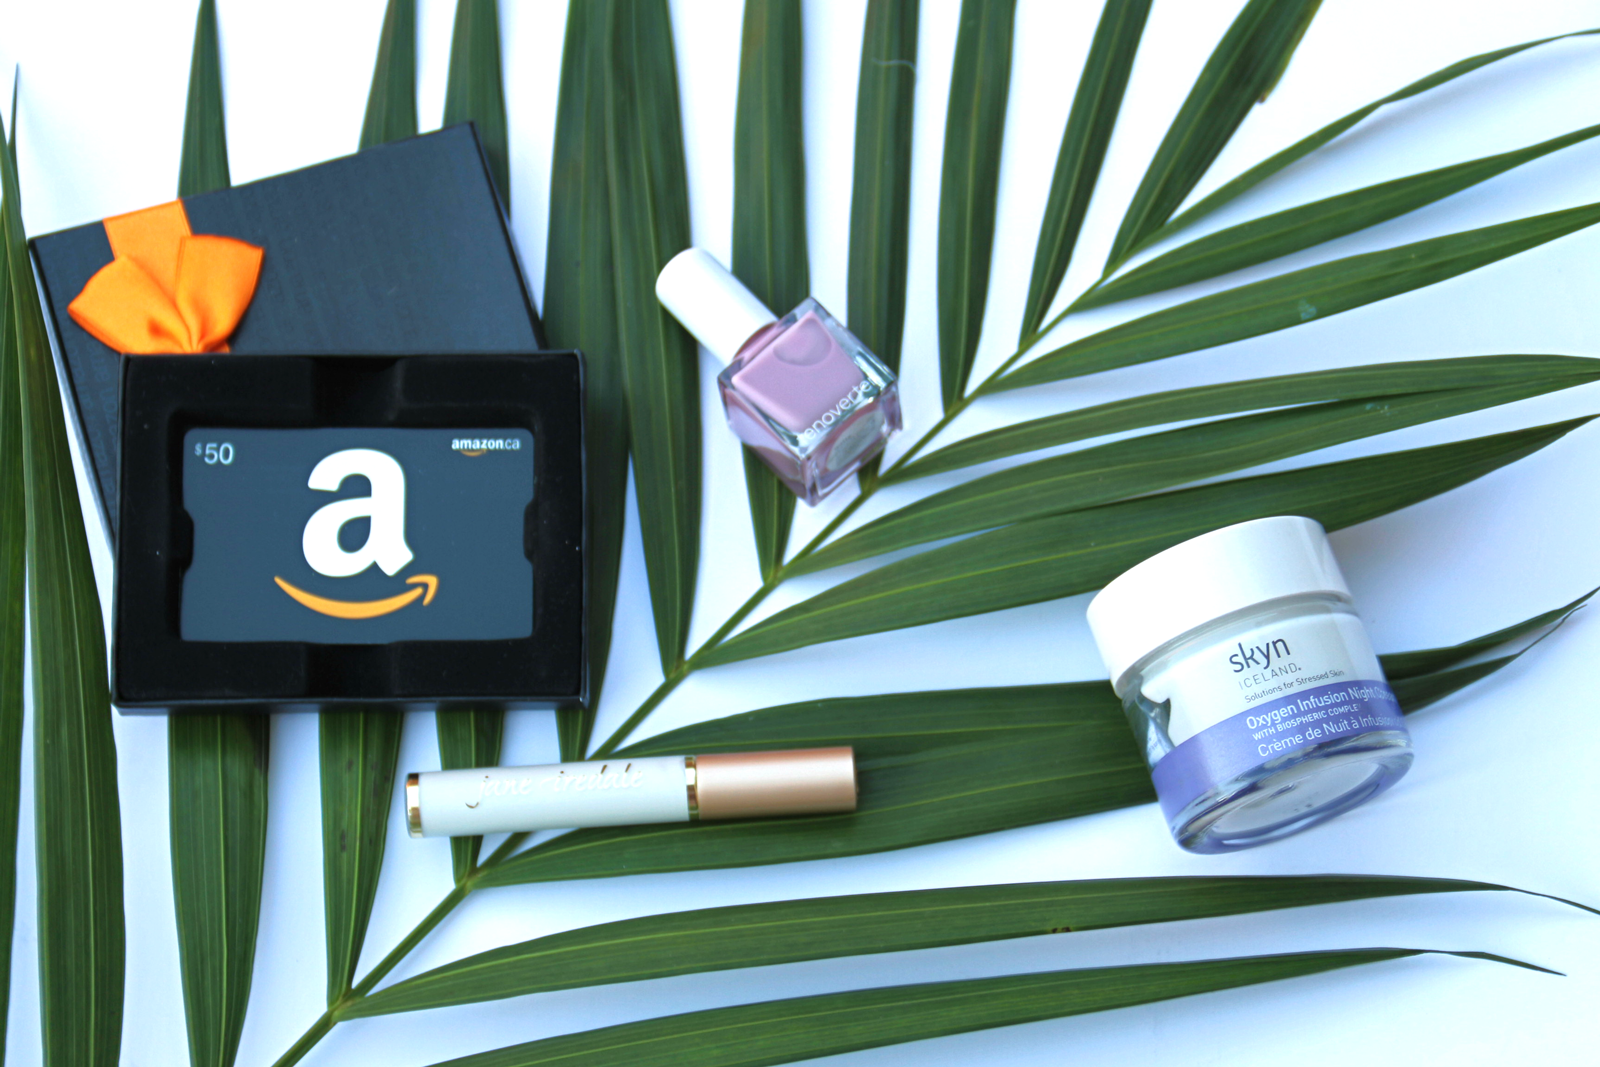 Amazon.ca Lux Beauty Store, Amazon.ca Launches Lux Beauty Store